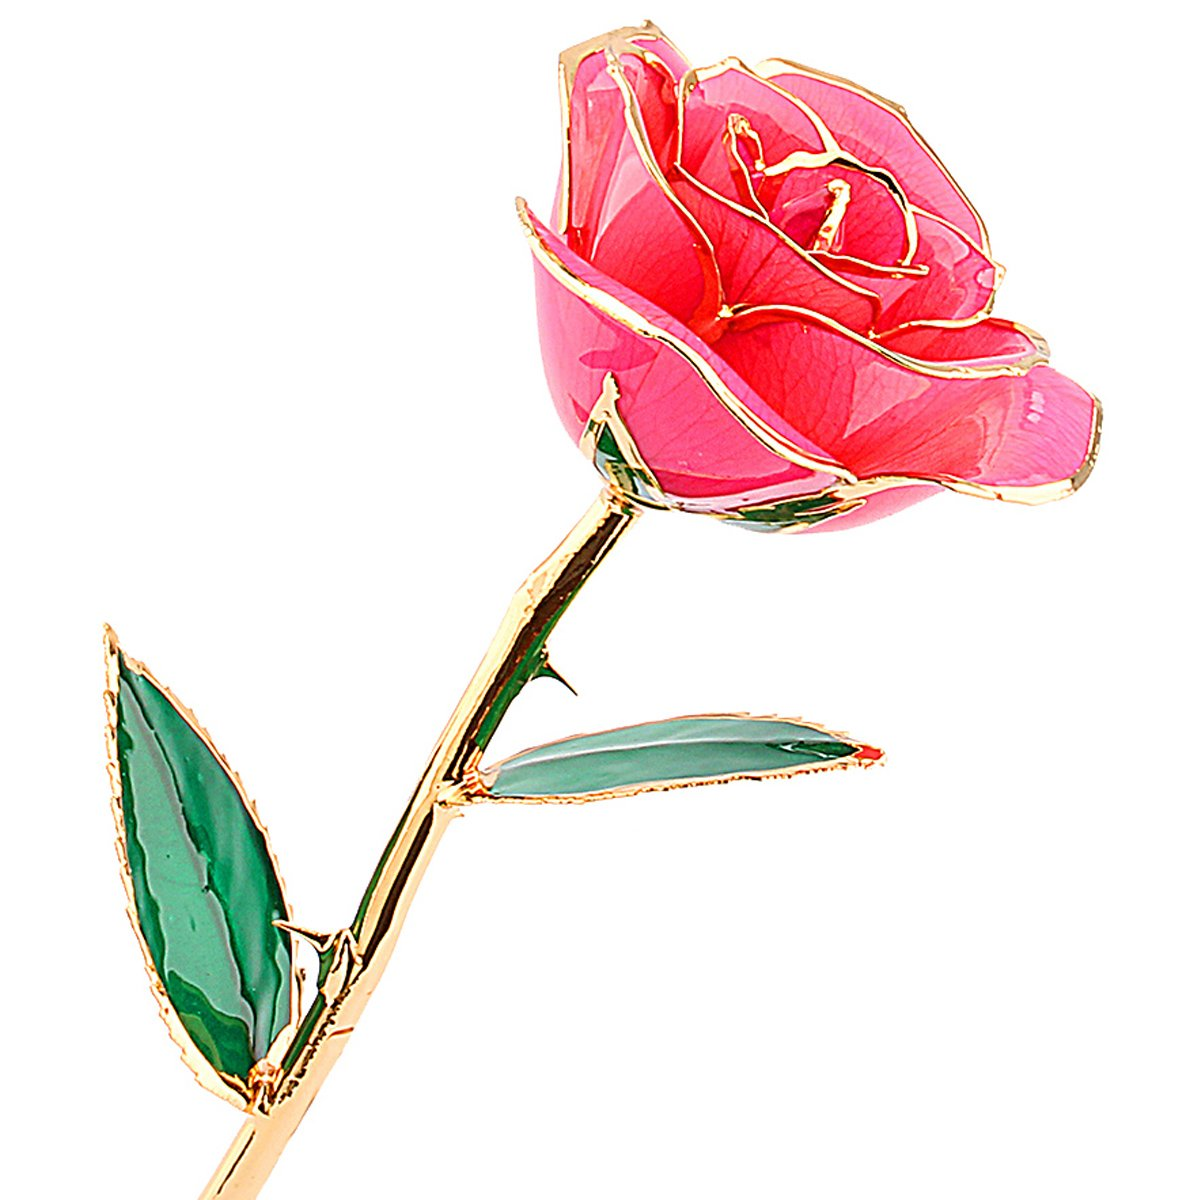 24 Carat Gold Dipped Pink Real Rose Flower Gift For Girlfriend. Valentine  Day Gift Ideas